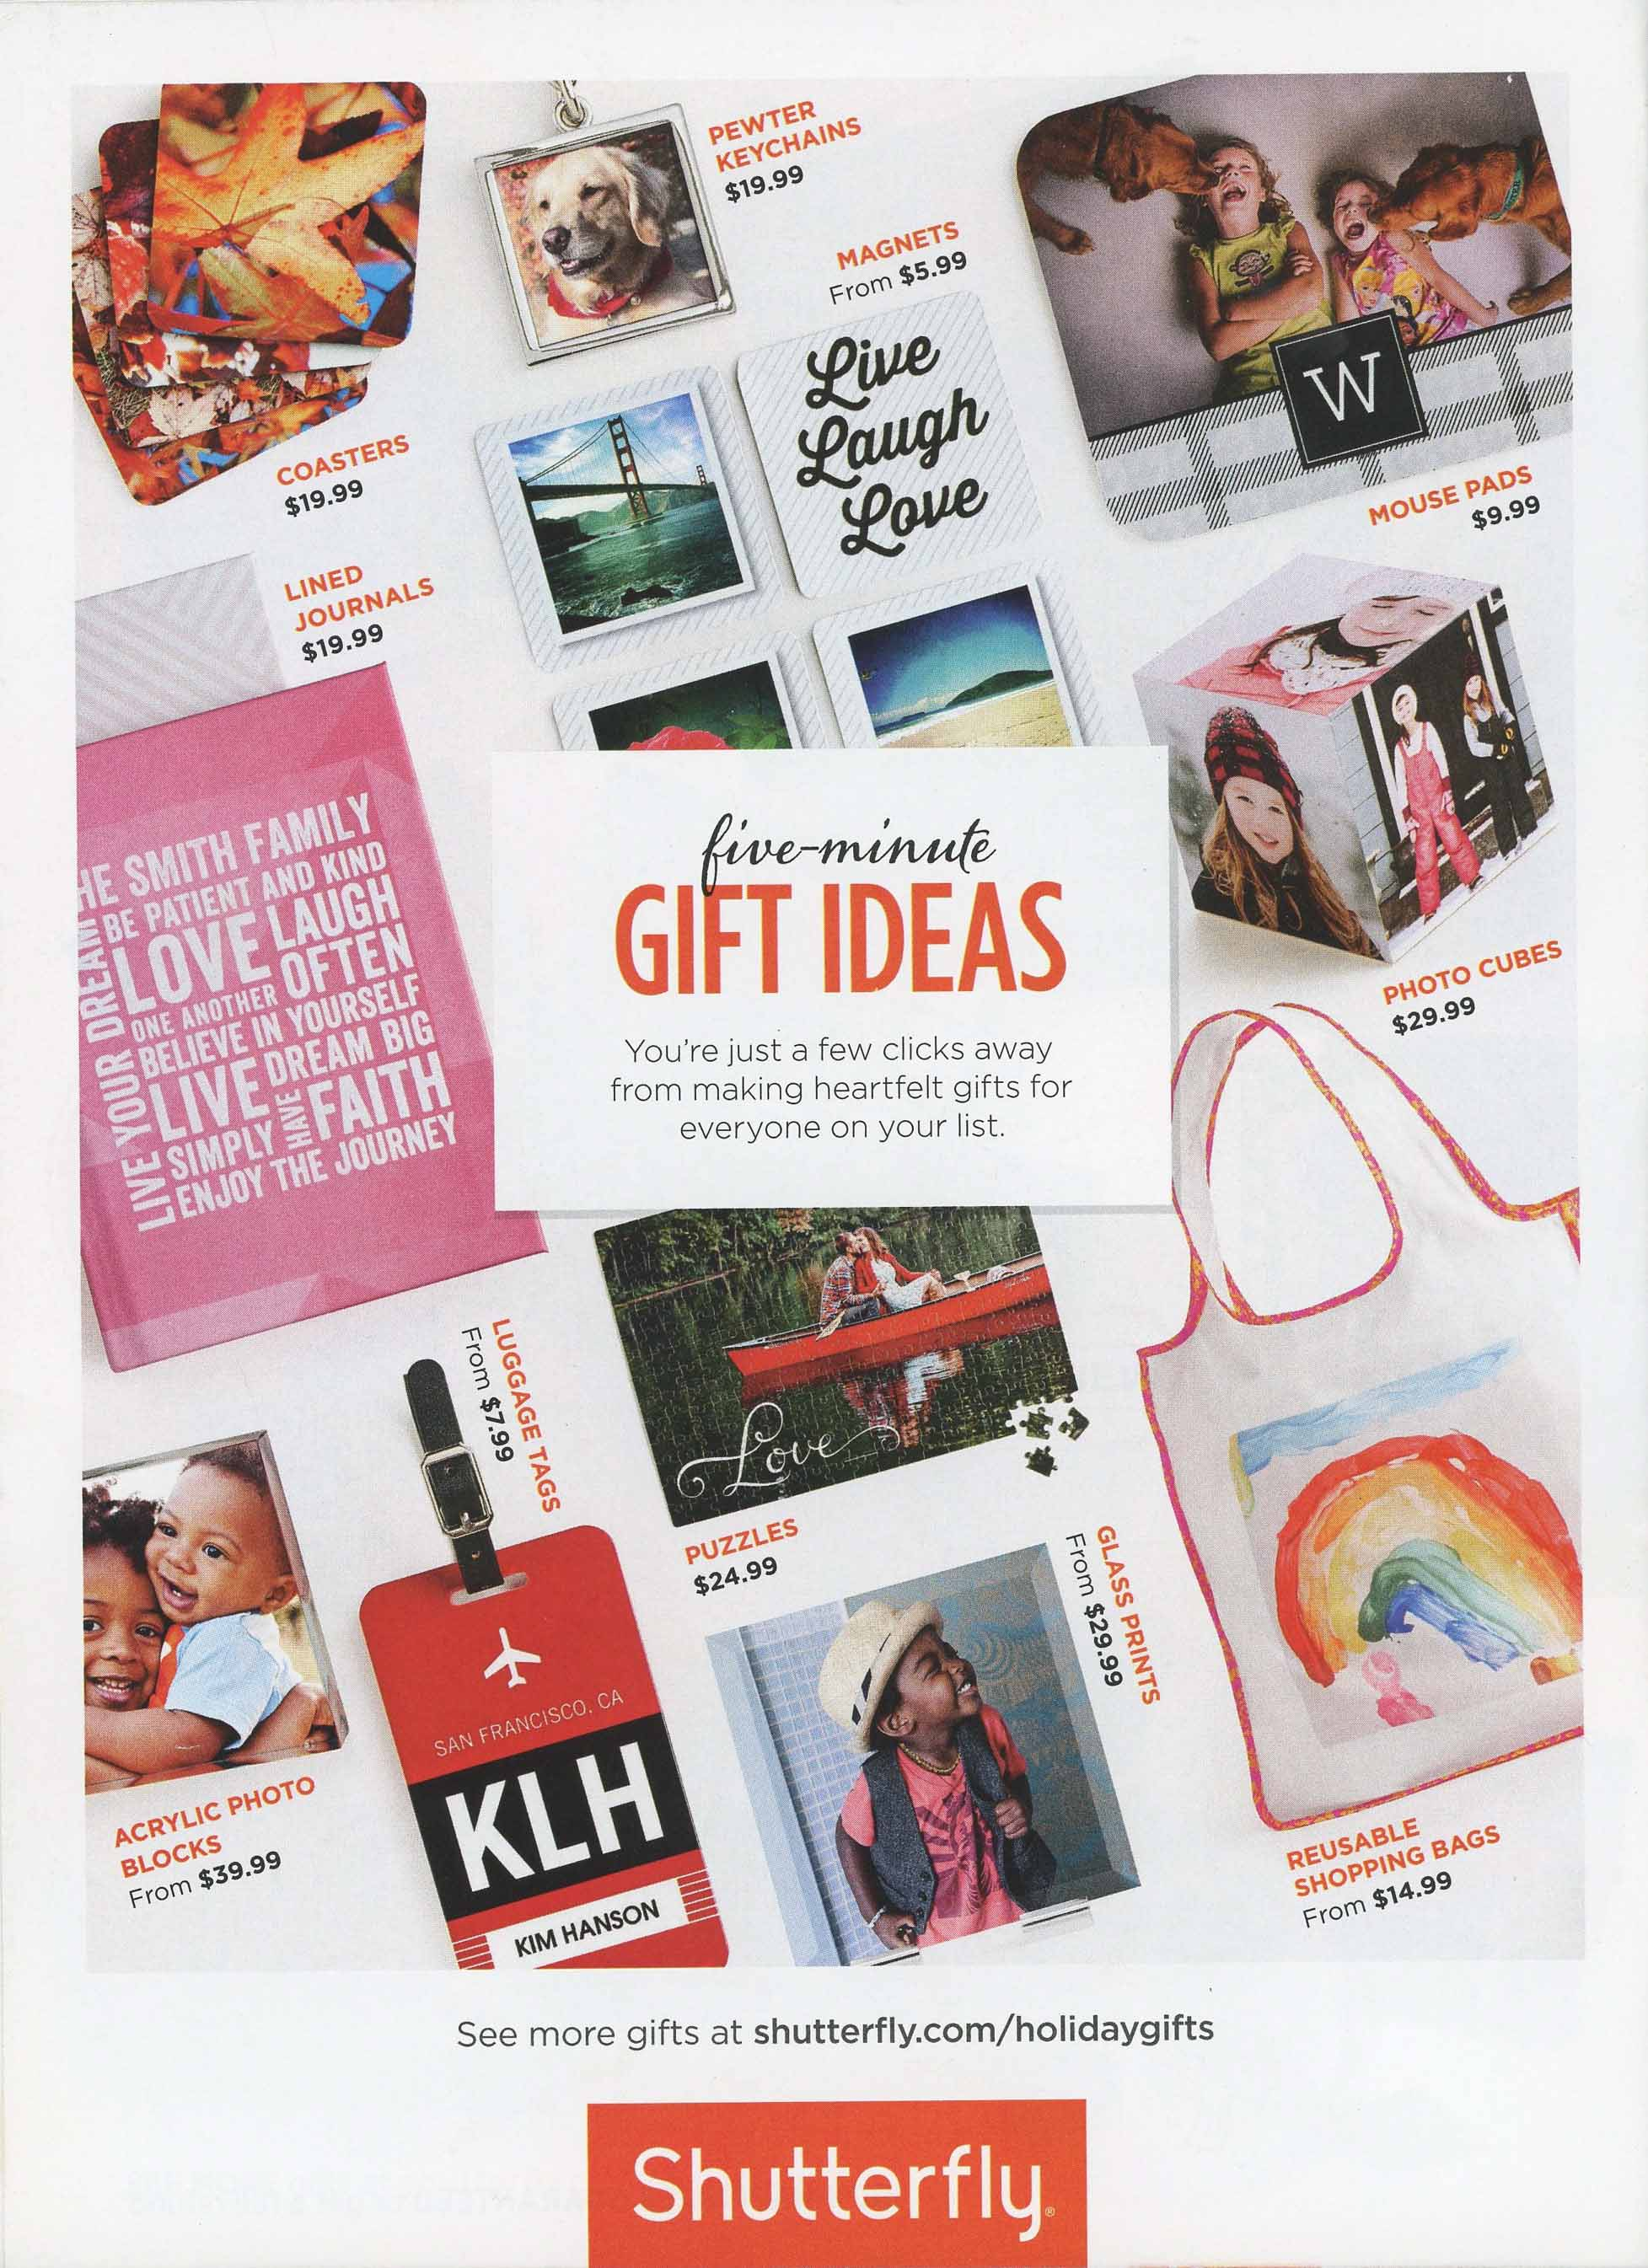 2014 Shutterfly Holiday Gift Guide pg 12